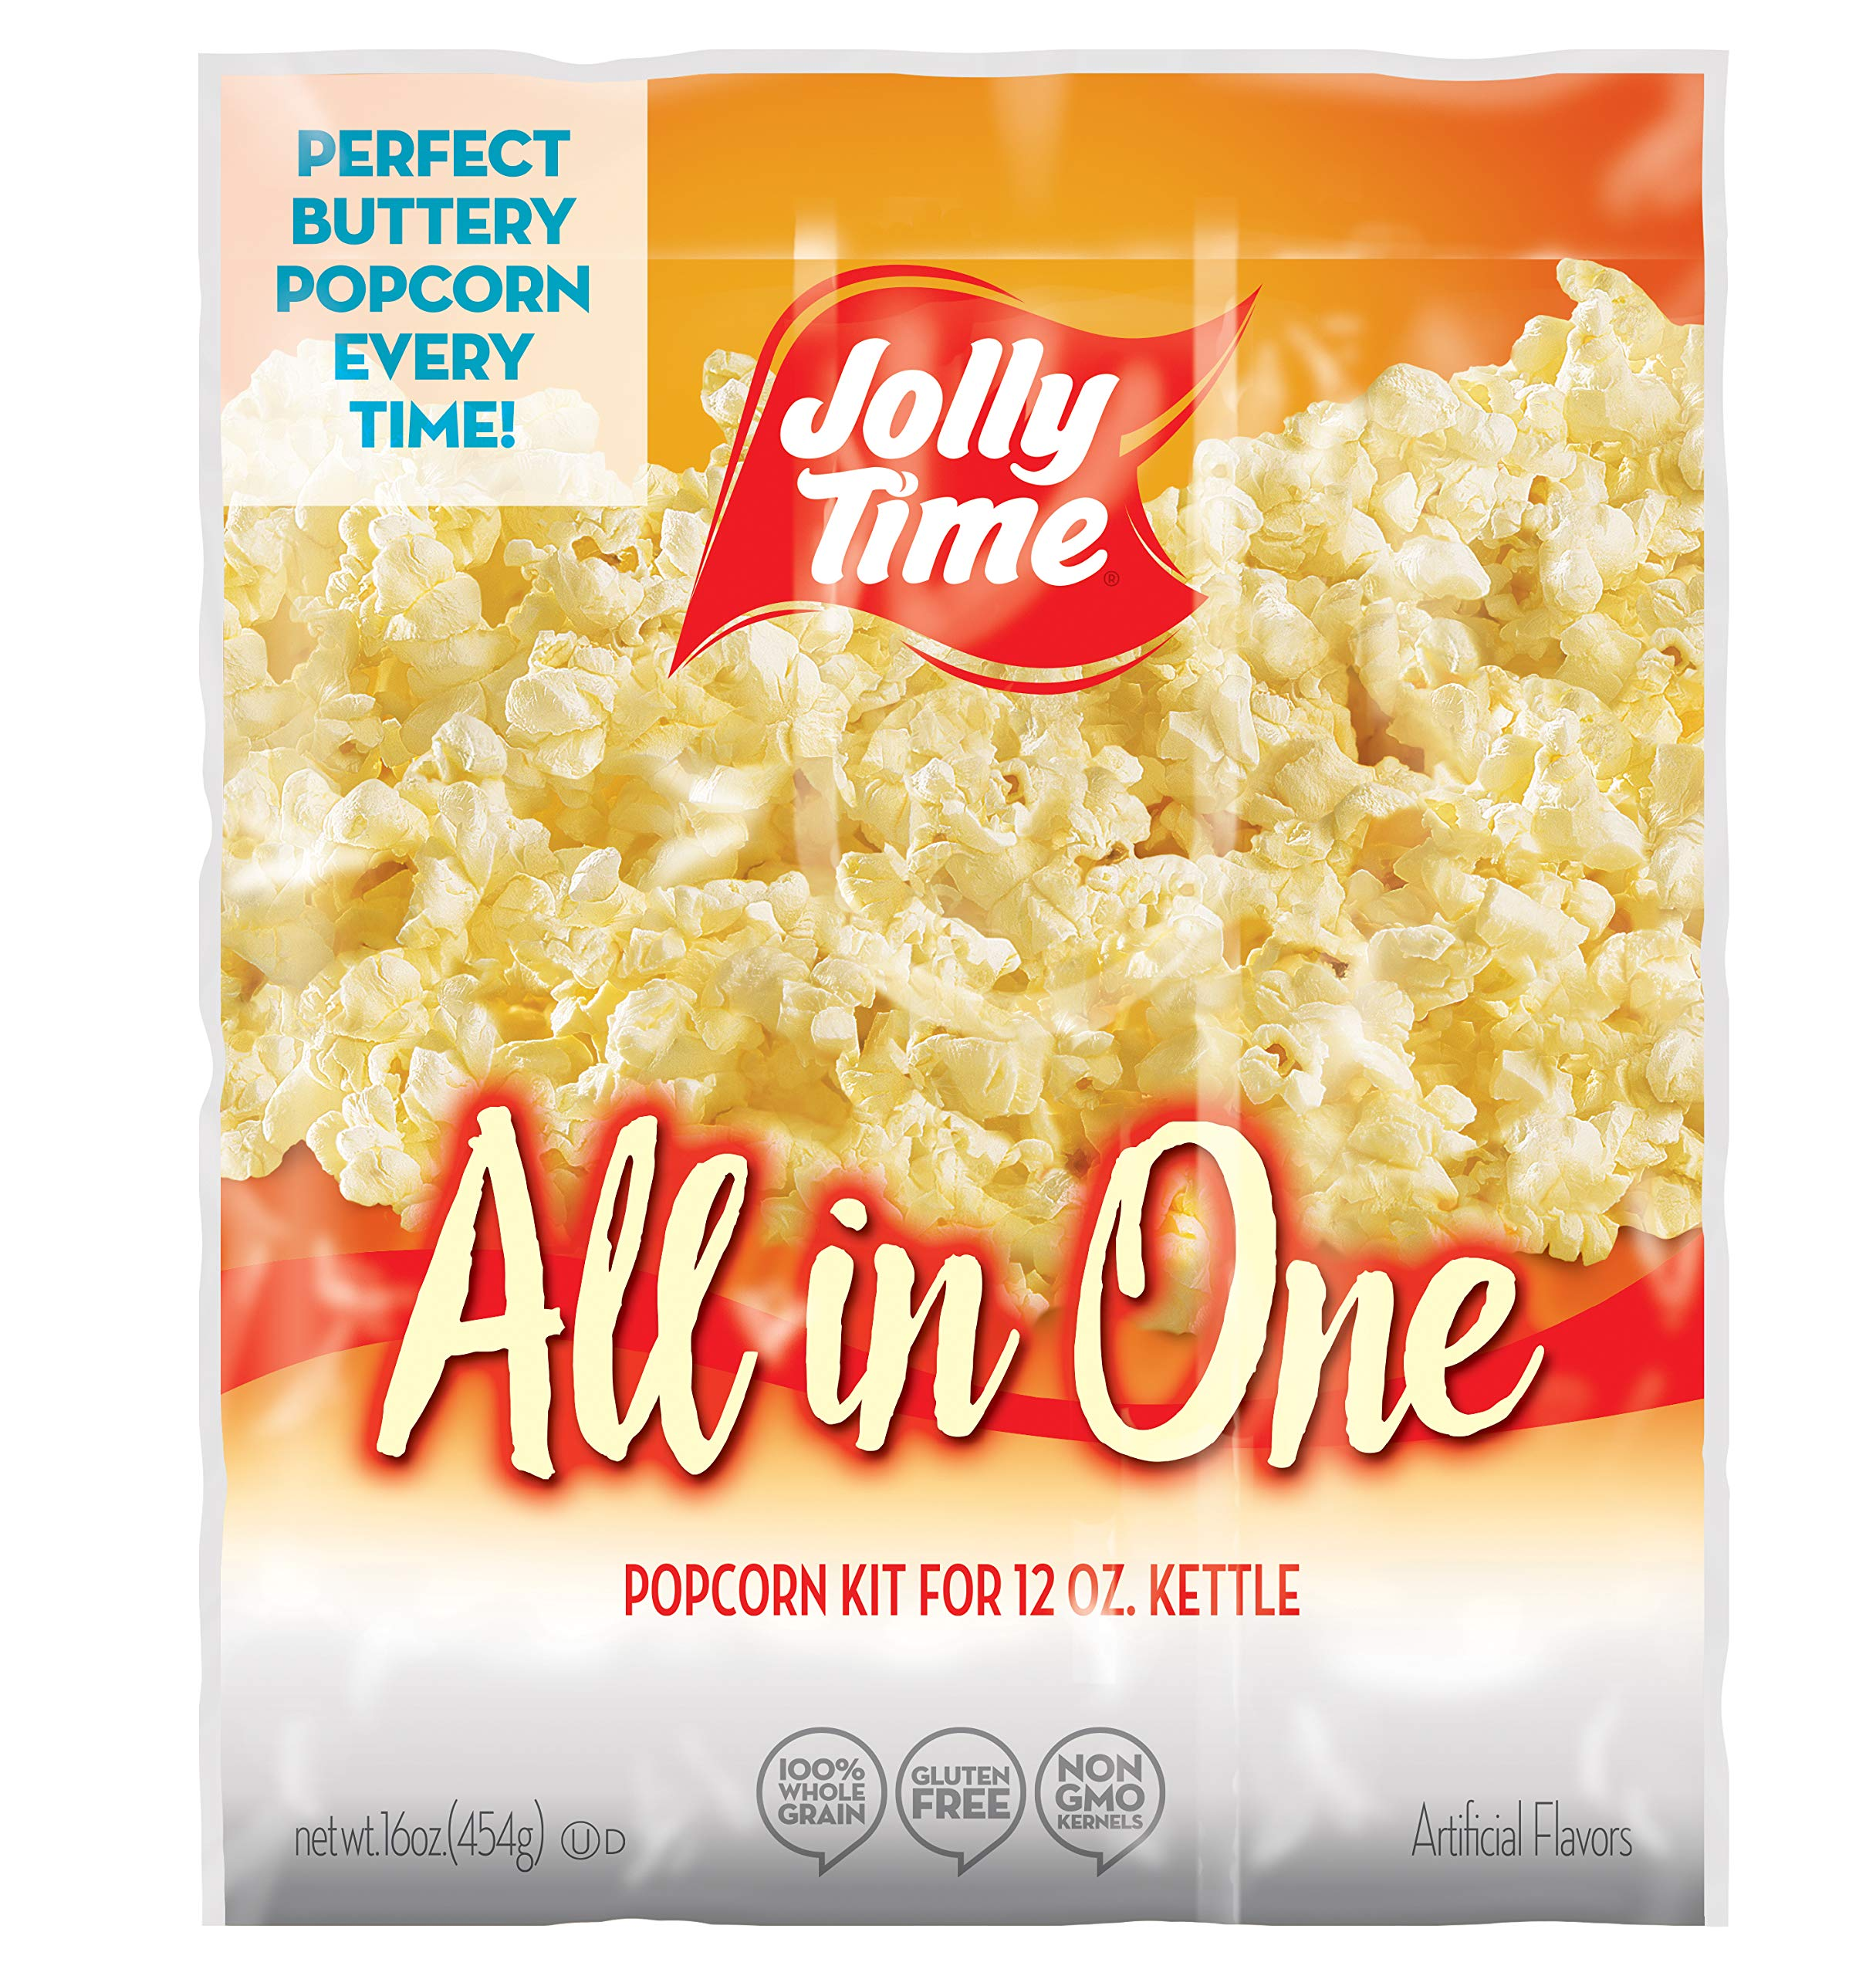 JOLLY TIME All in One Kit for 12 oz. Popcorn Machine | Portion Packet with Kernels, Oil and Salt Commercial, Movie Theater or Air Popper (Net Wt. 16 oz. Each, Pack of 24) by Jolly Time